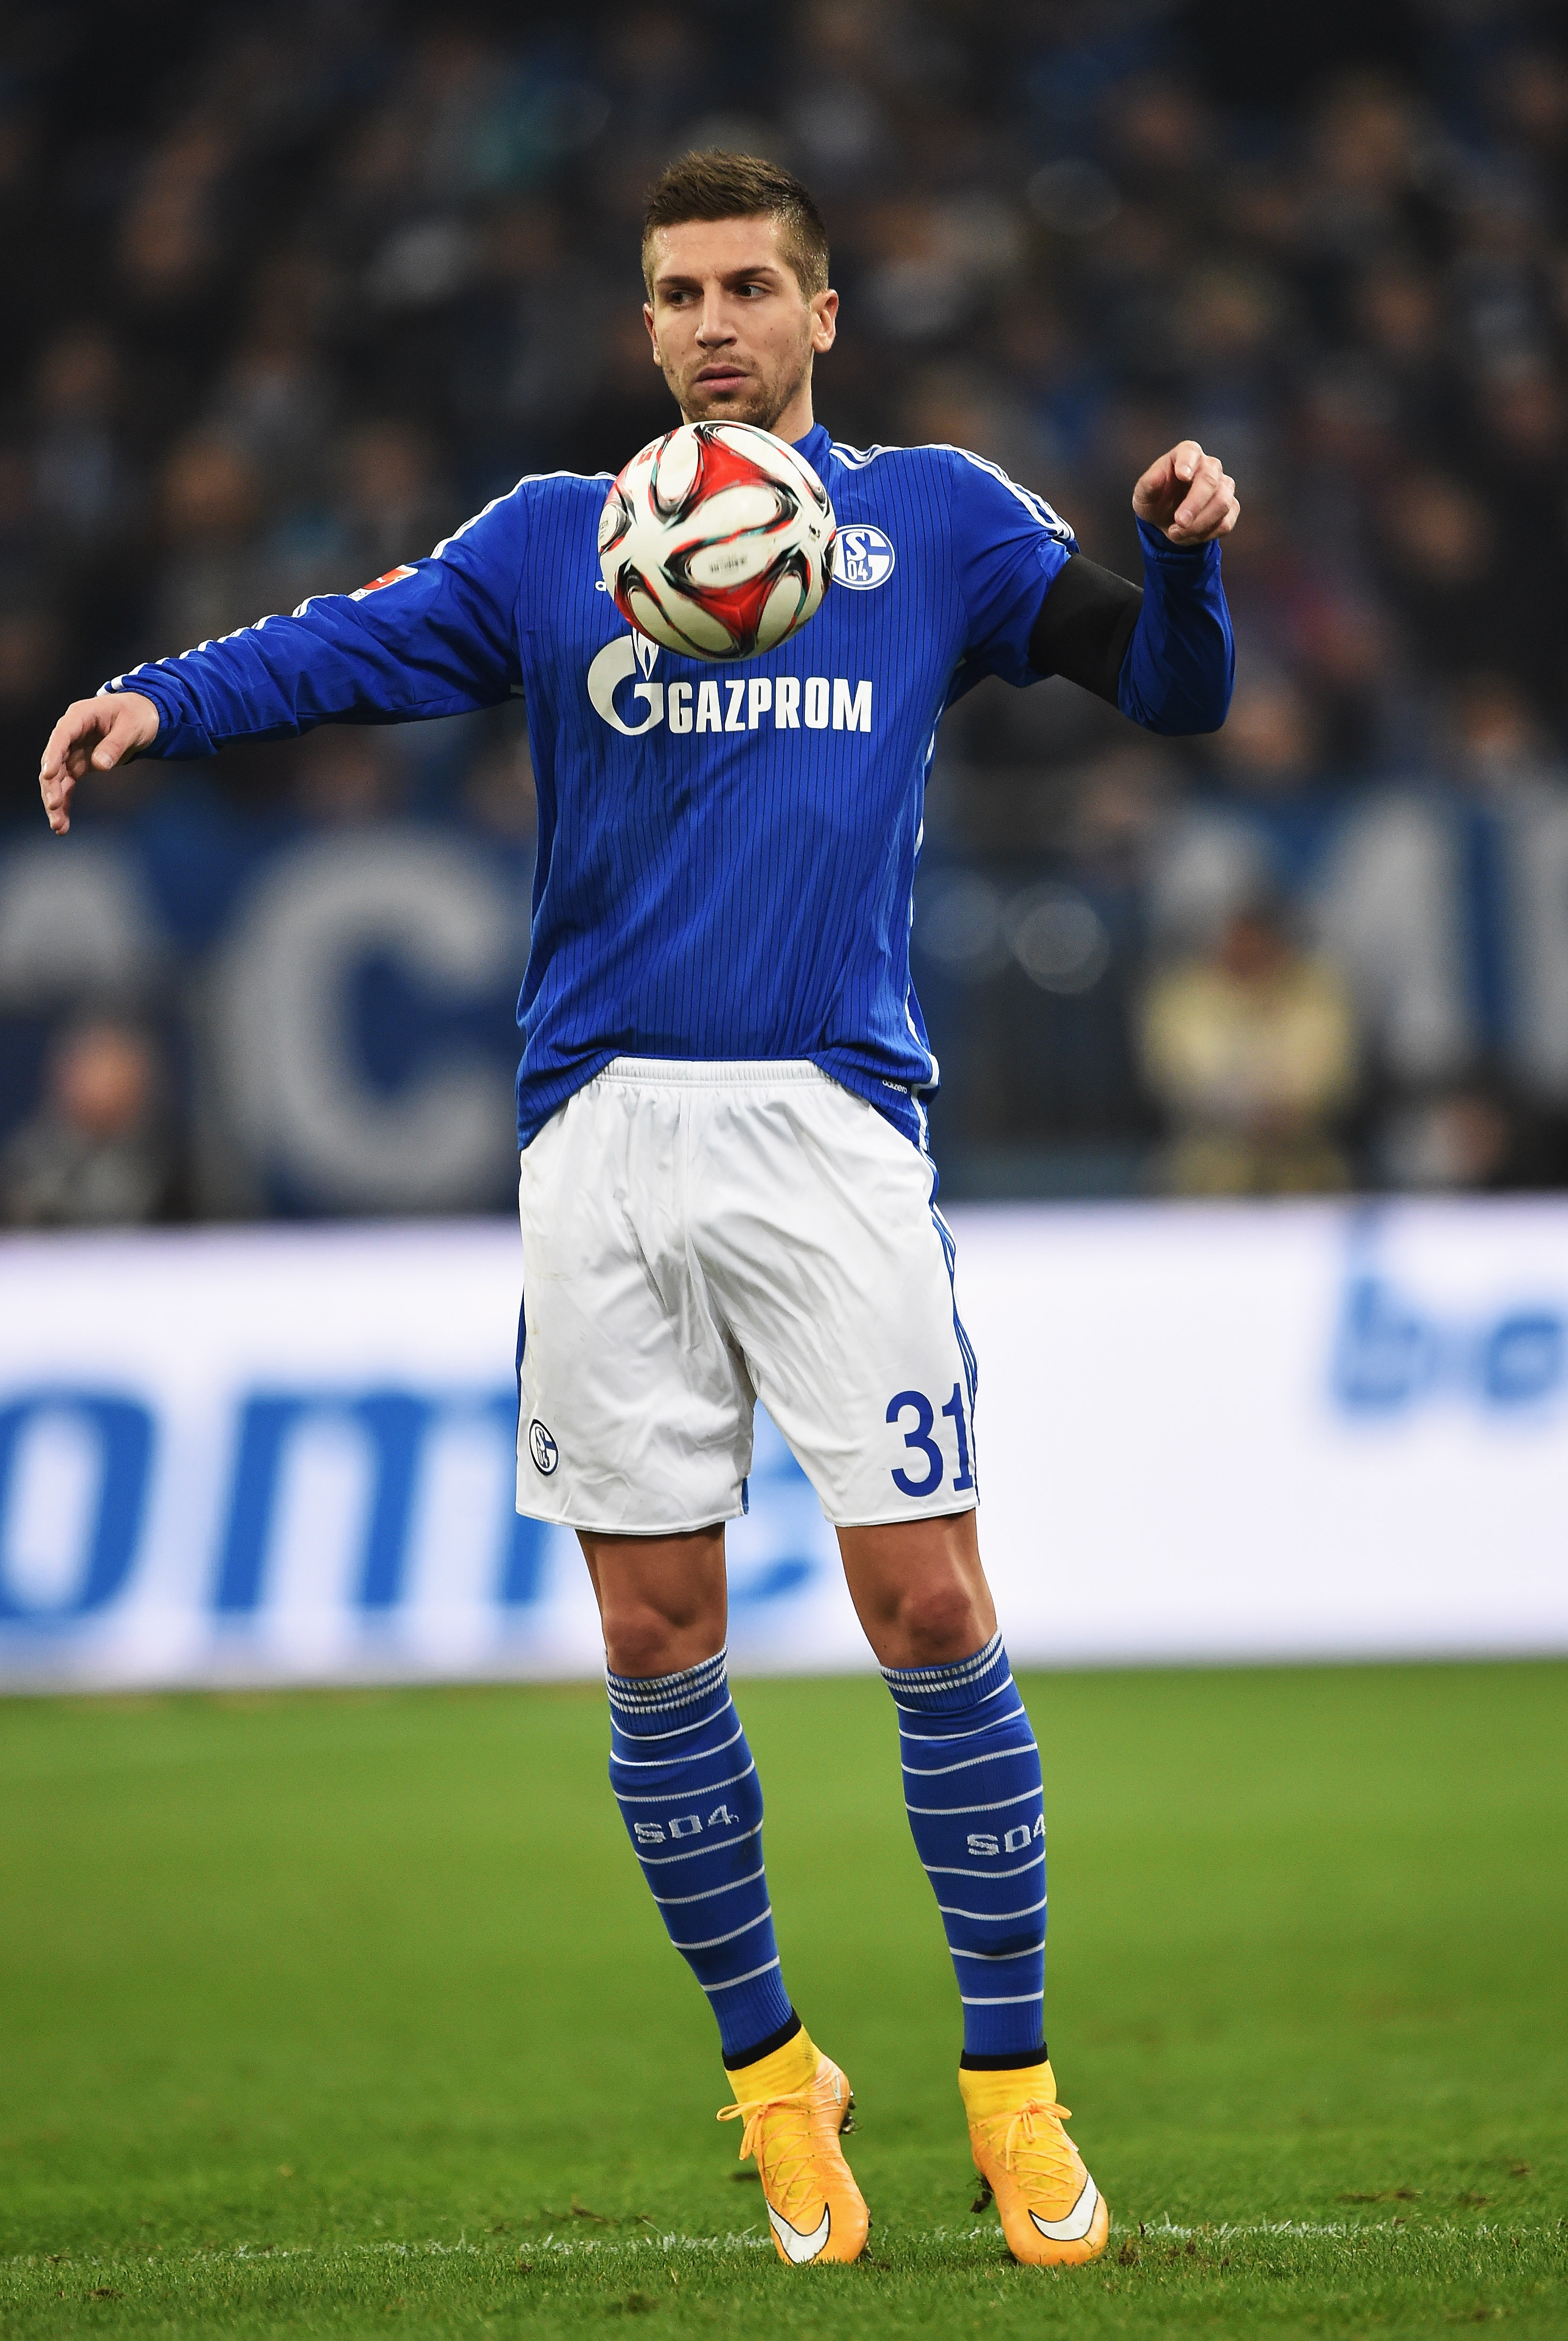 Switch confirmed: Matija Nastasic has sealed a move from Manchester City to Schalke.